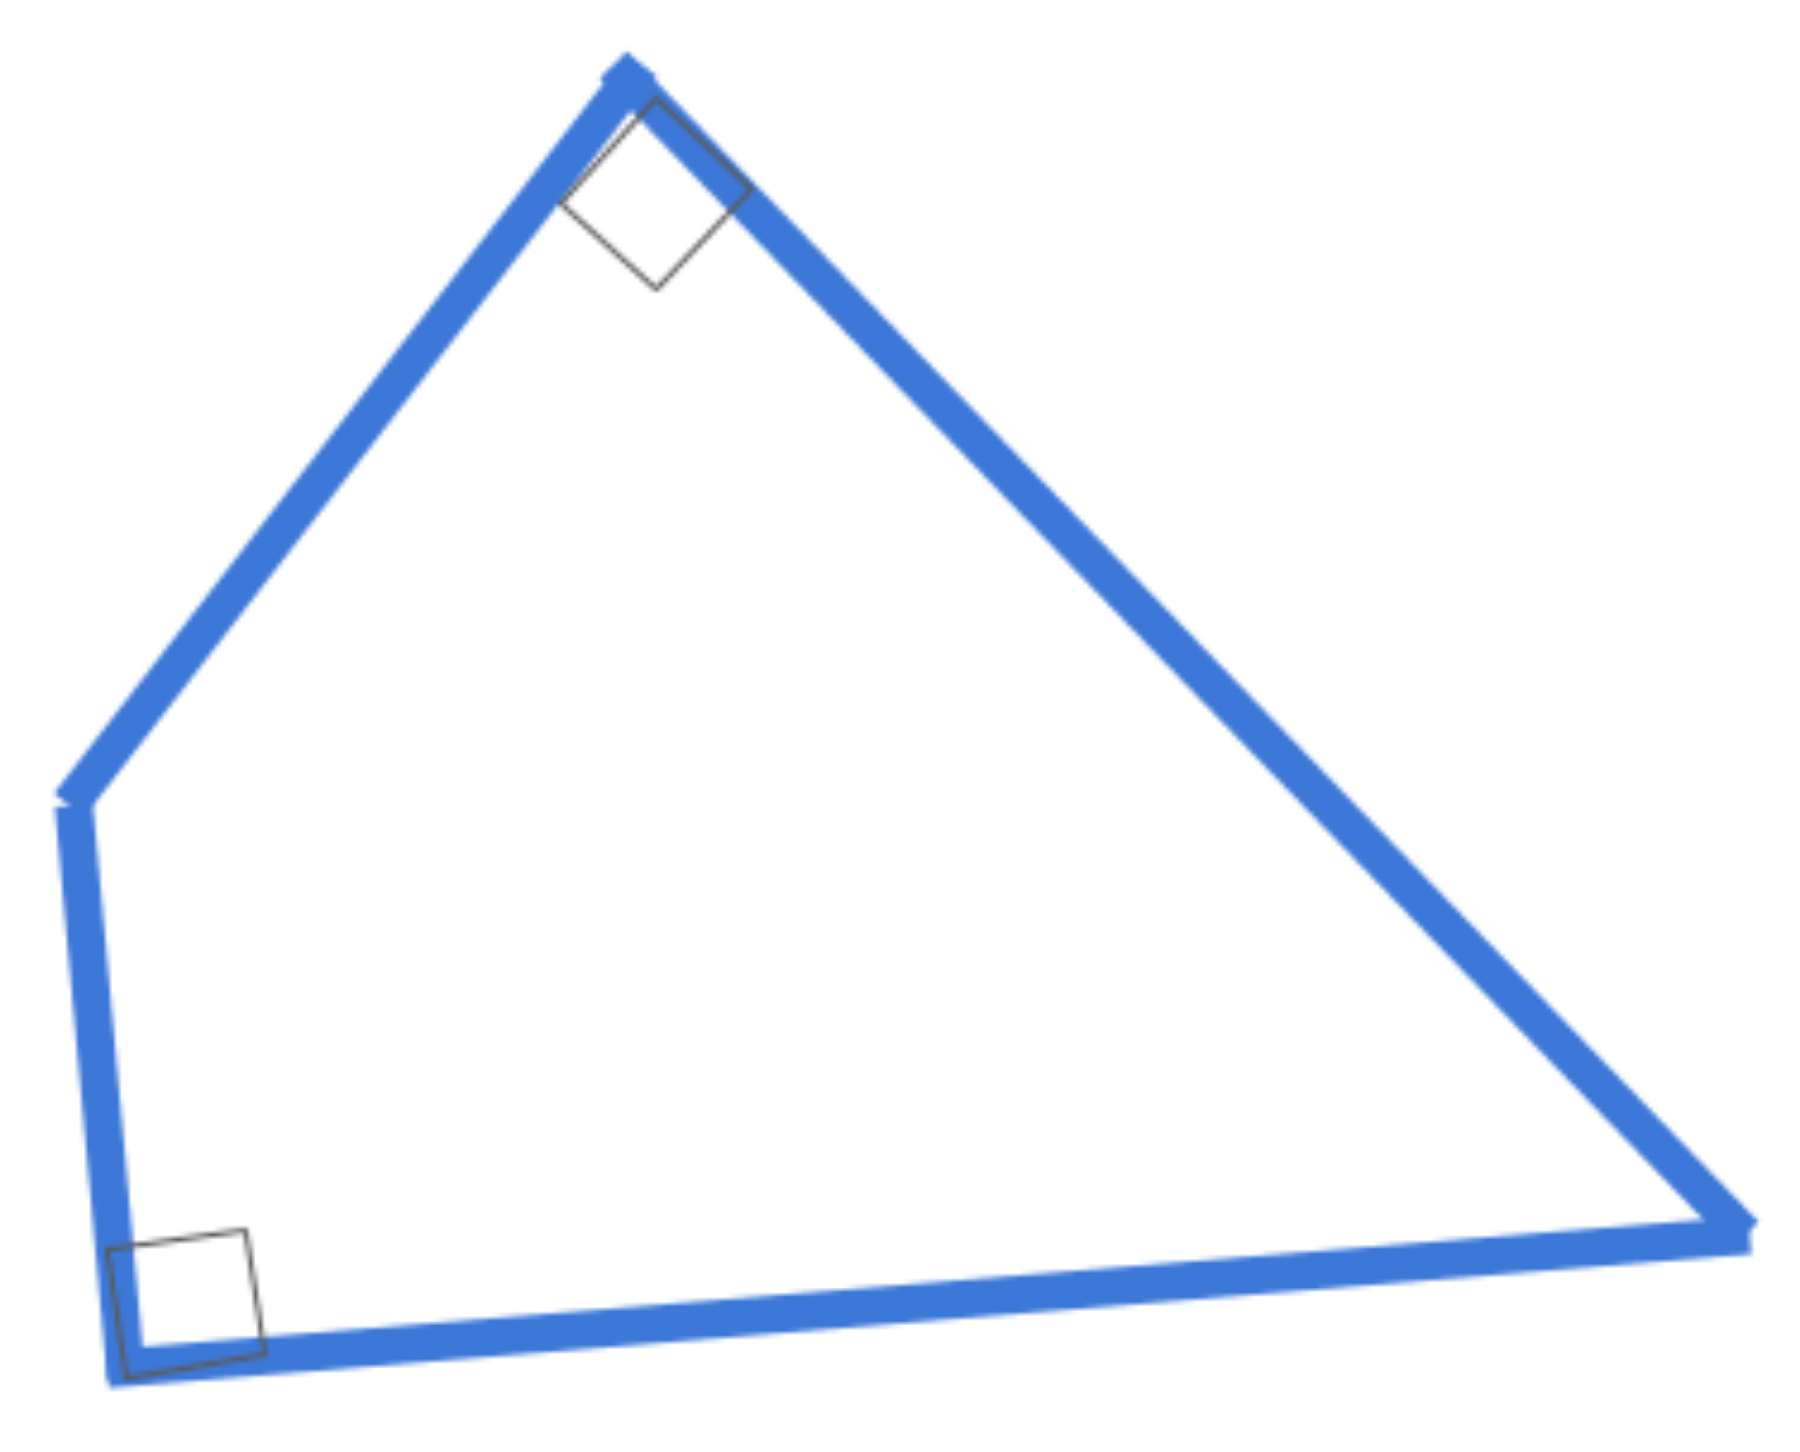 look at this quadrilateral